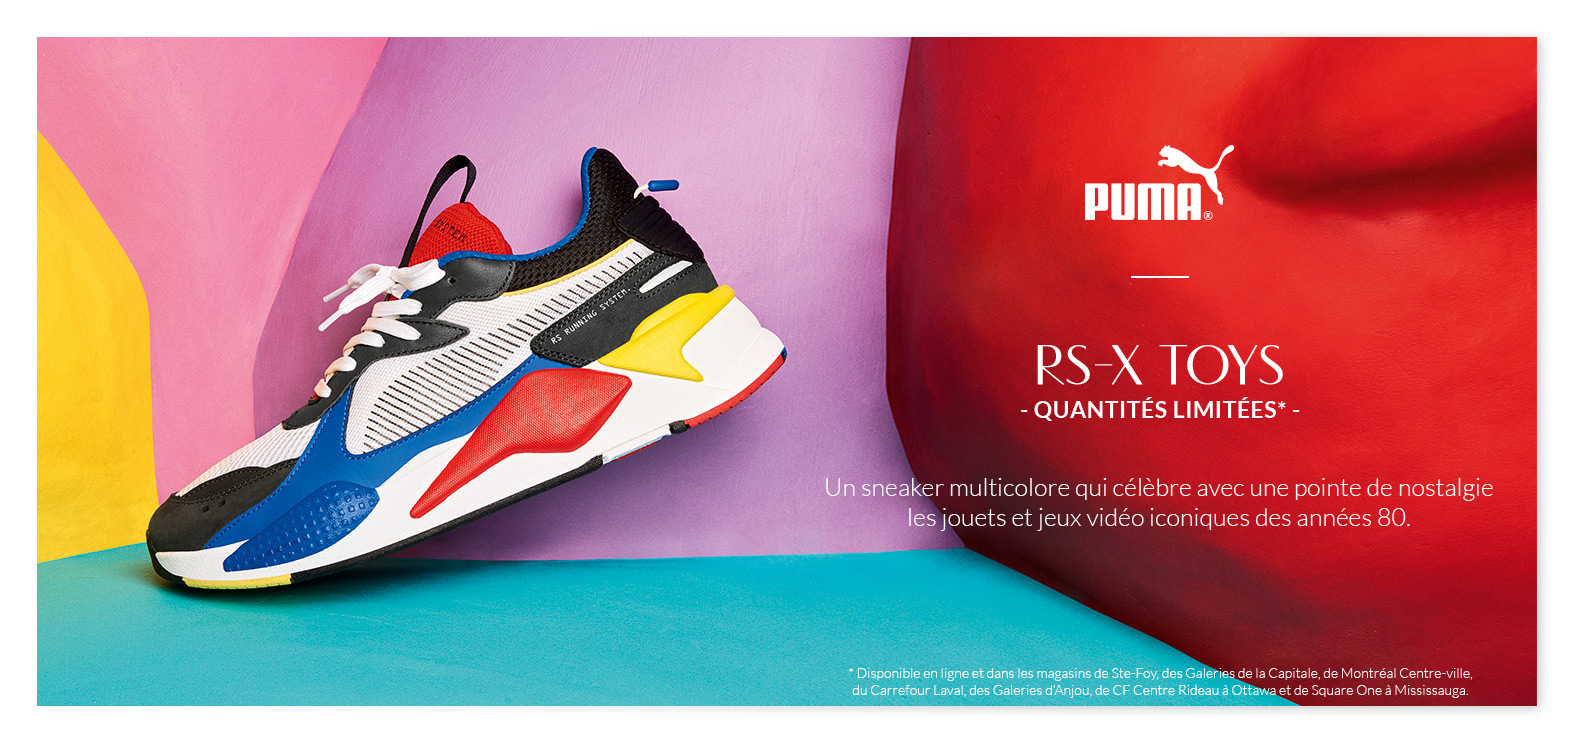 A18-BGL-HOMME-CHAUSSURES-RS-X TOYS.psd